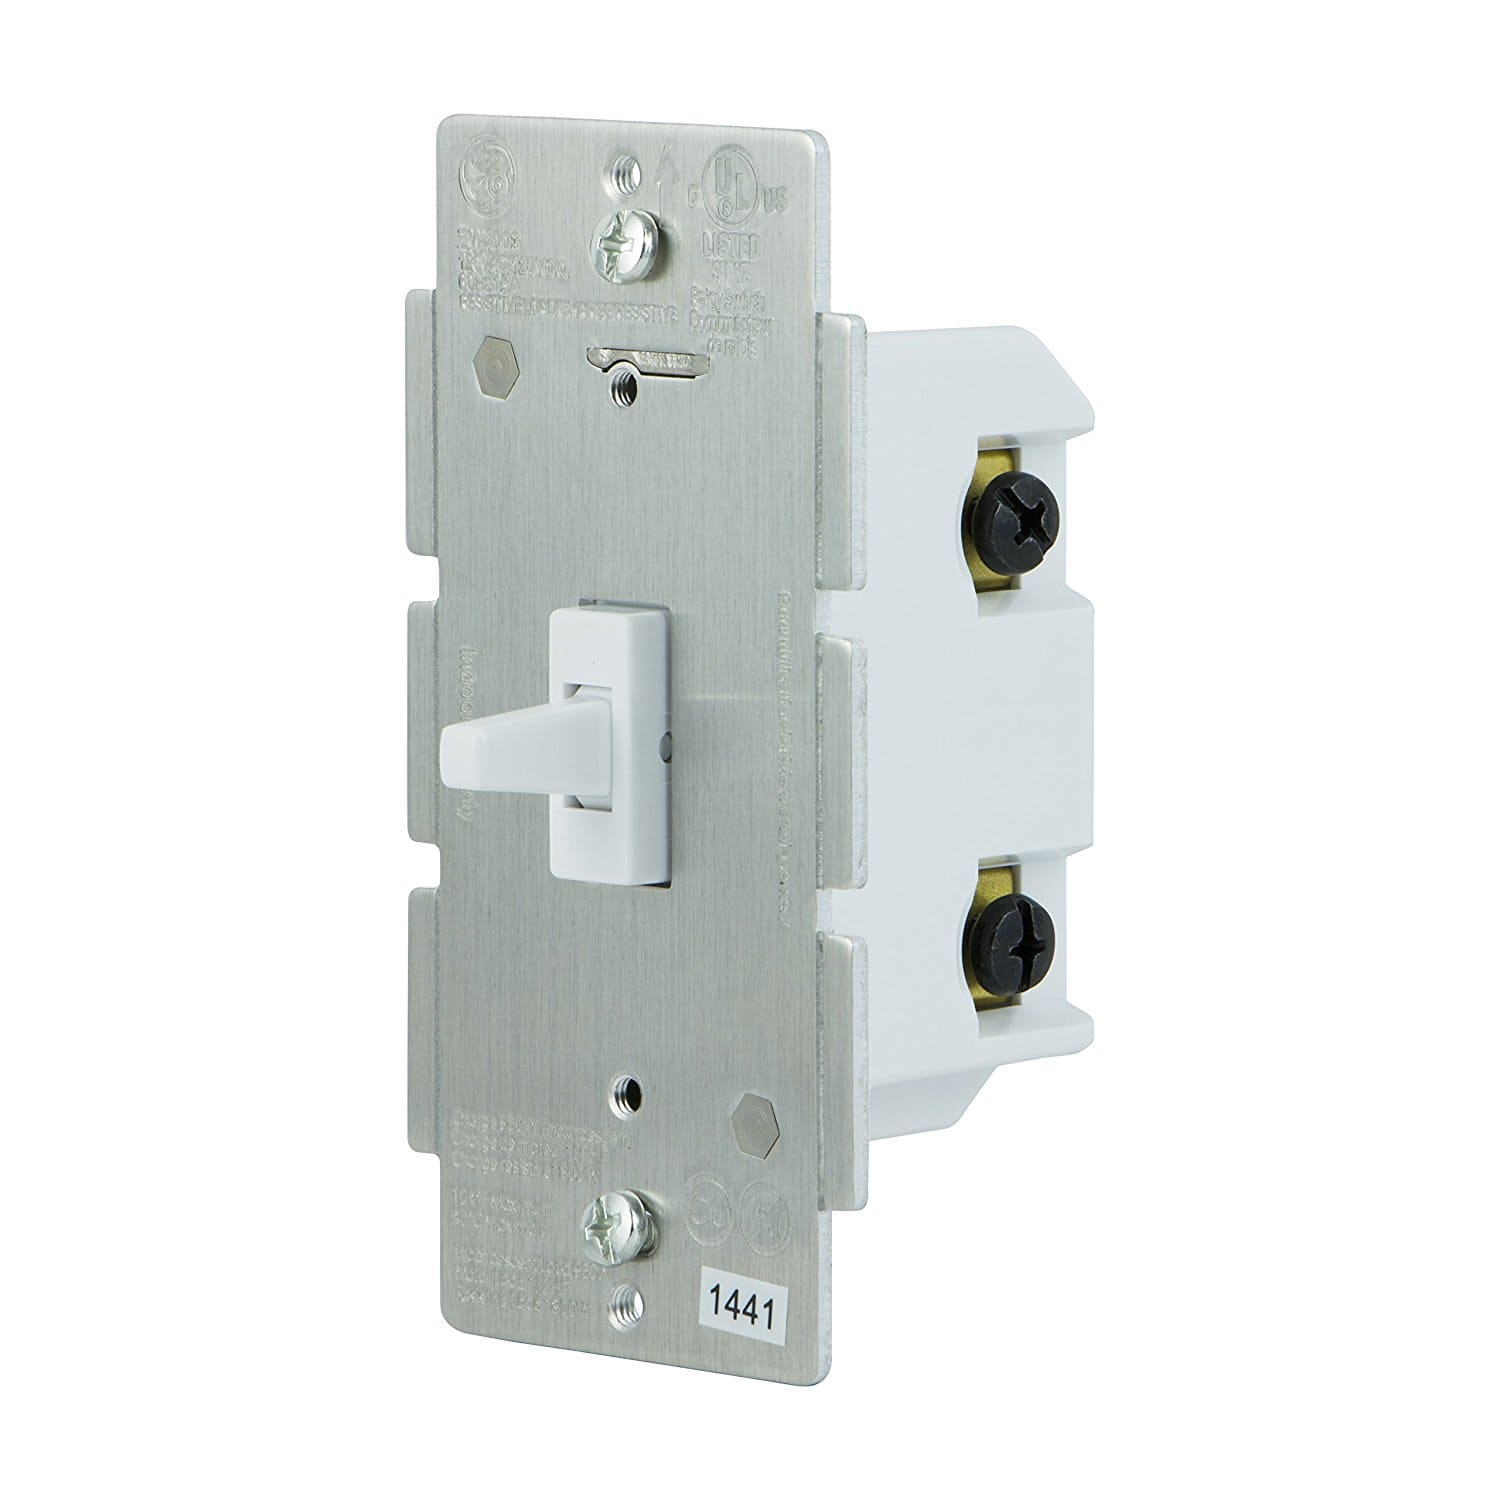 Ge Z Wave Plus Wireless Smart Lighting On Off Toggle